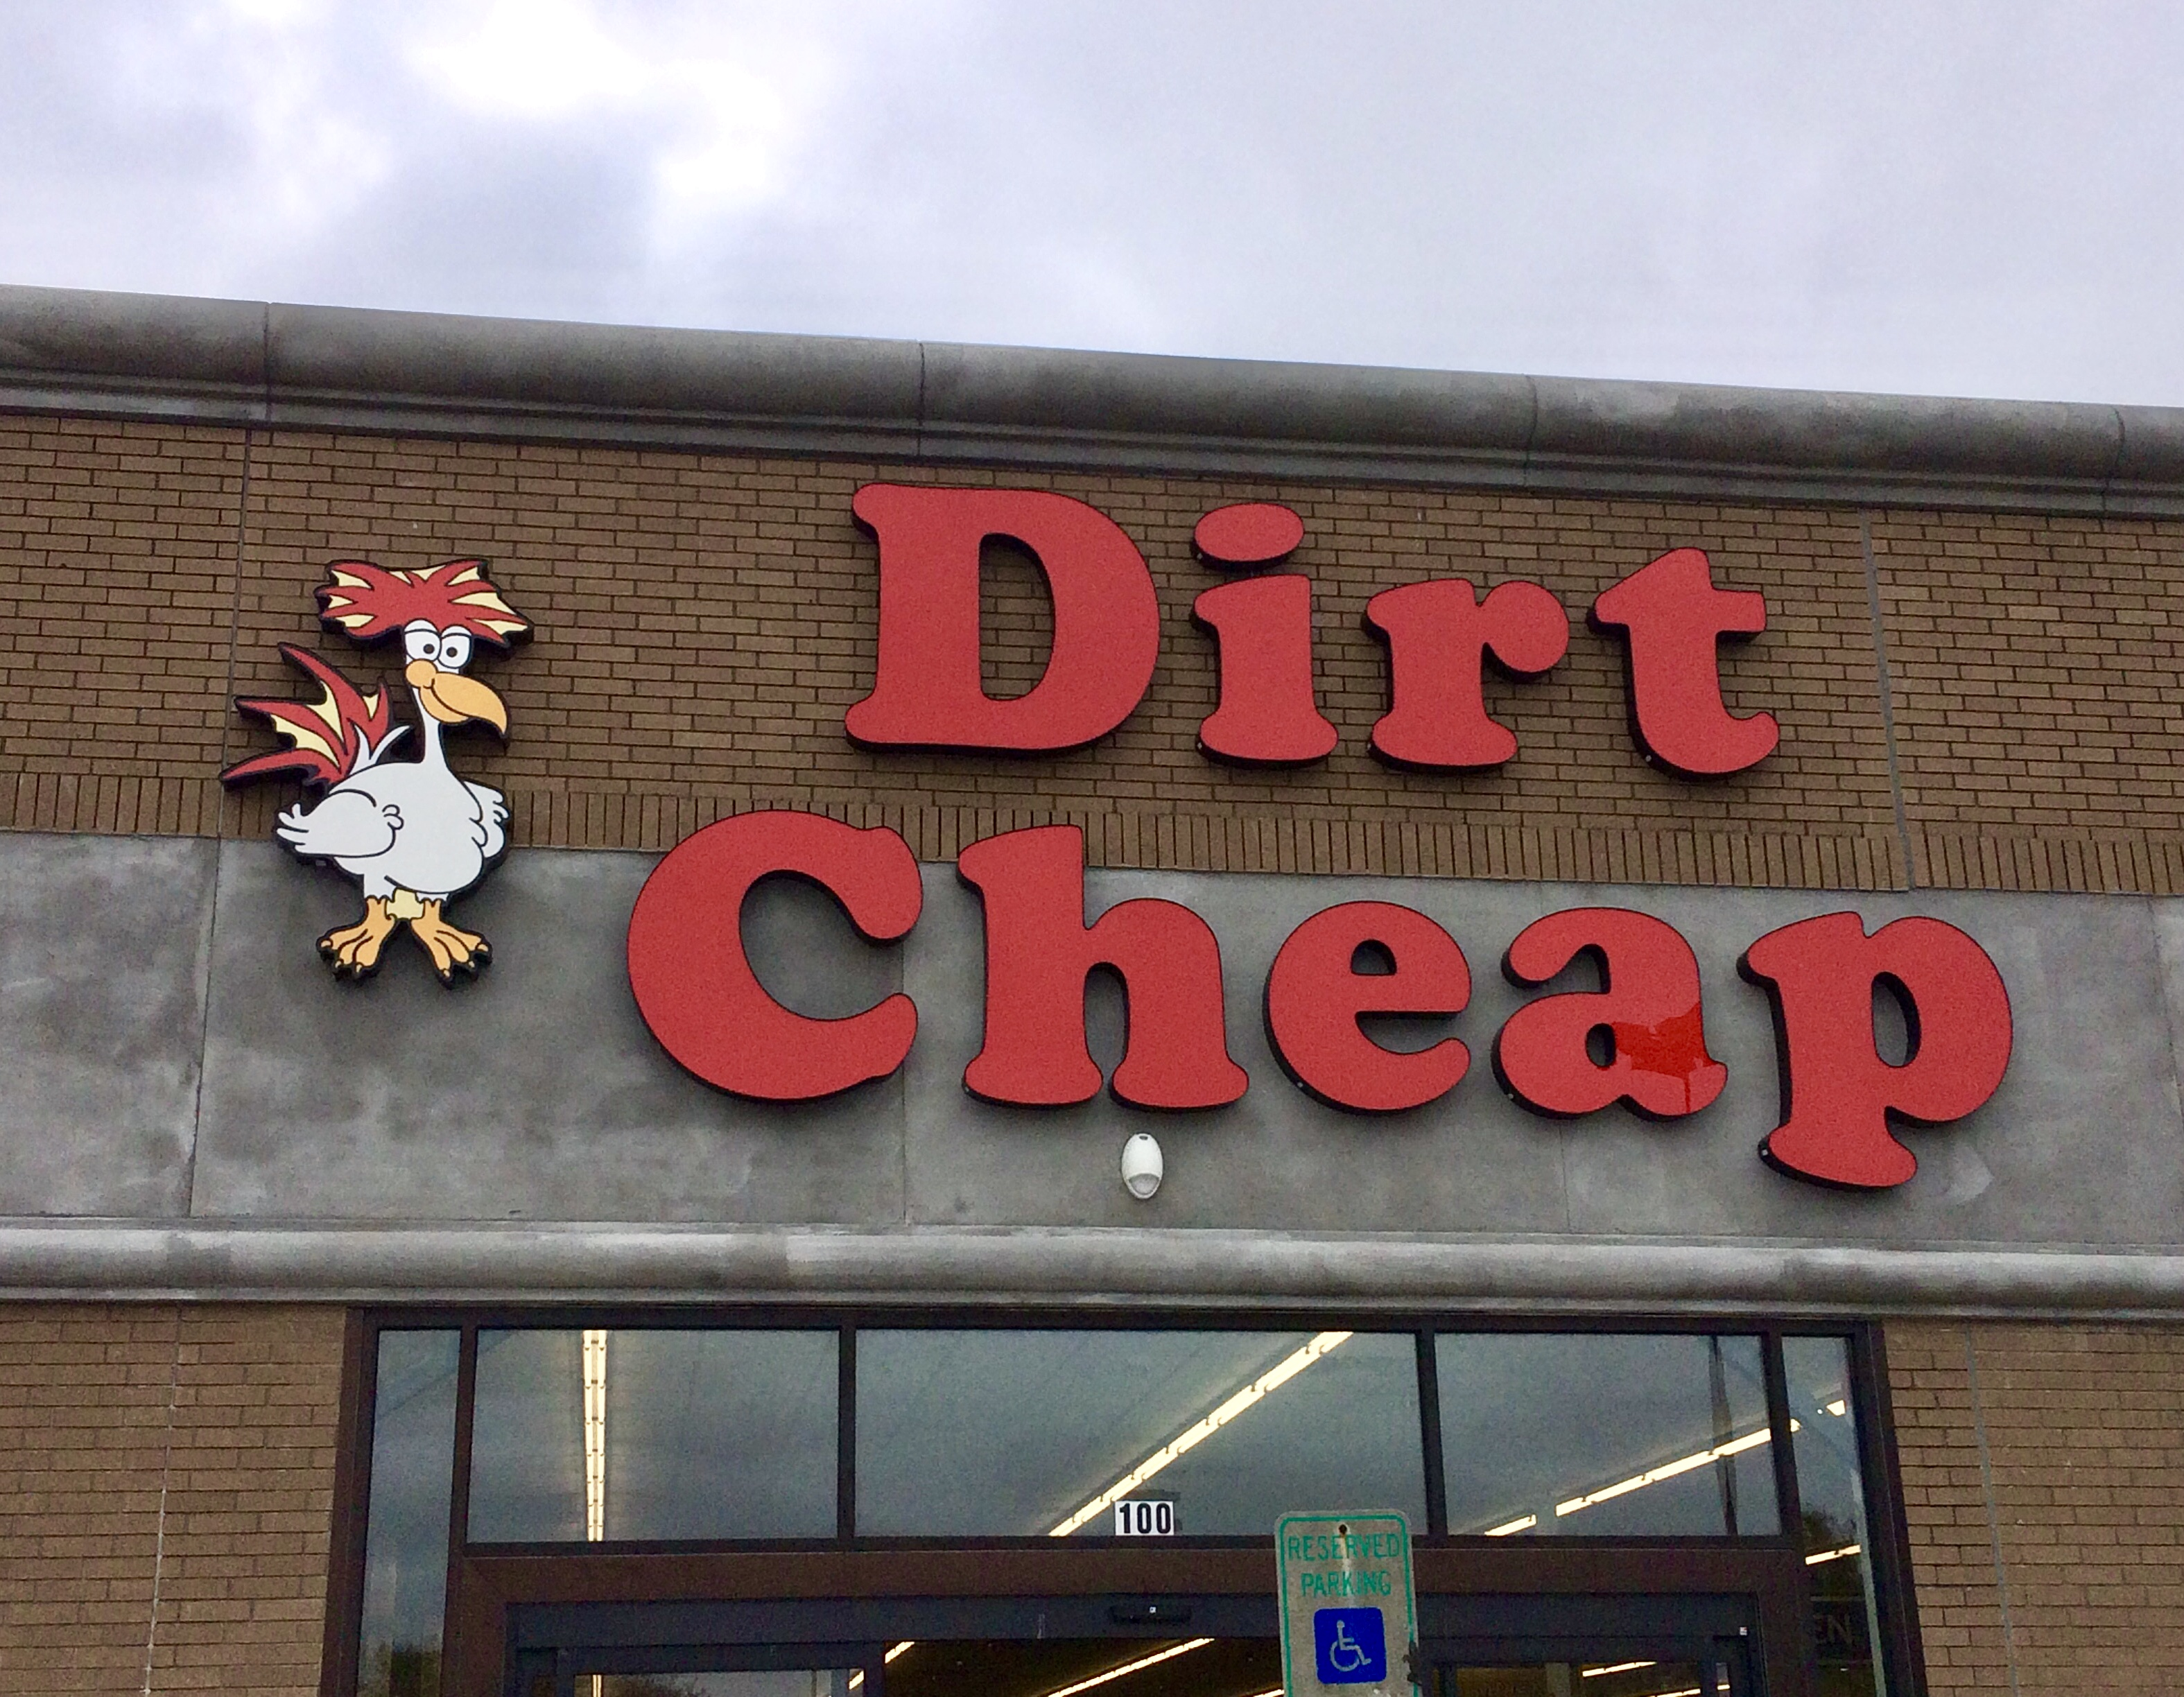 Pasadena Dirt Cheap